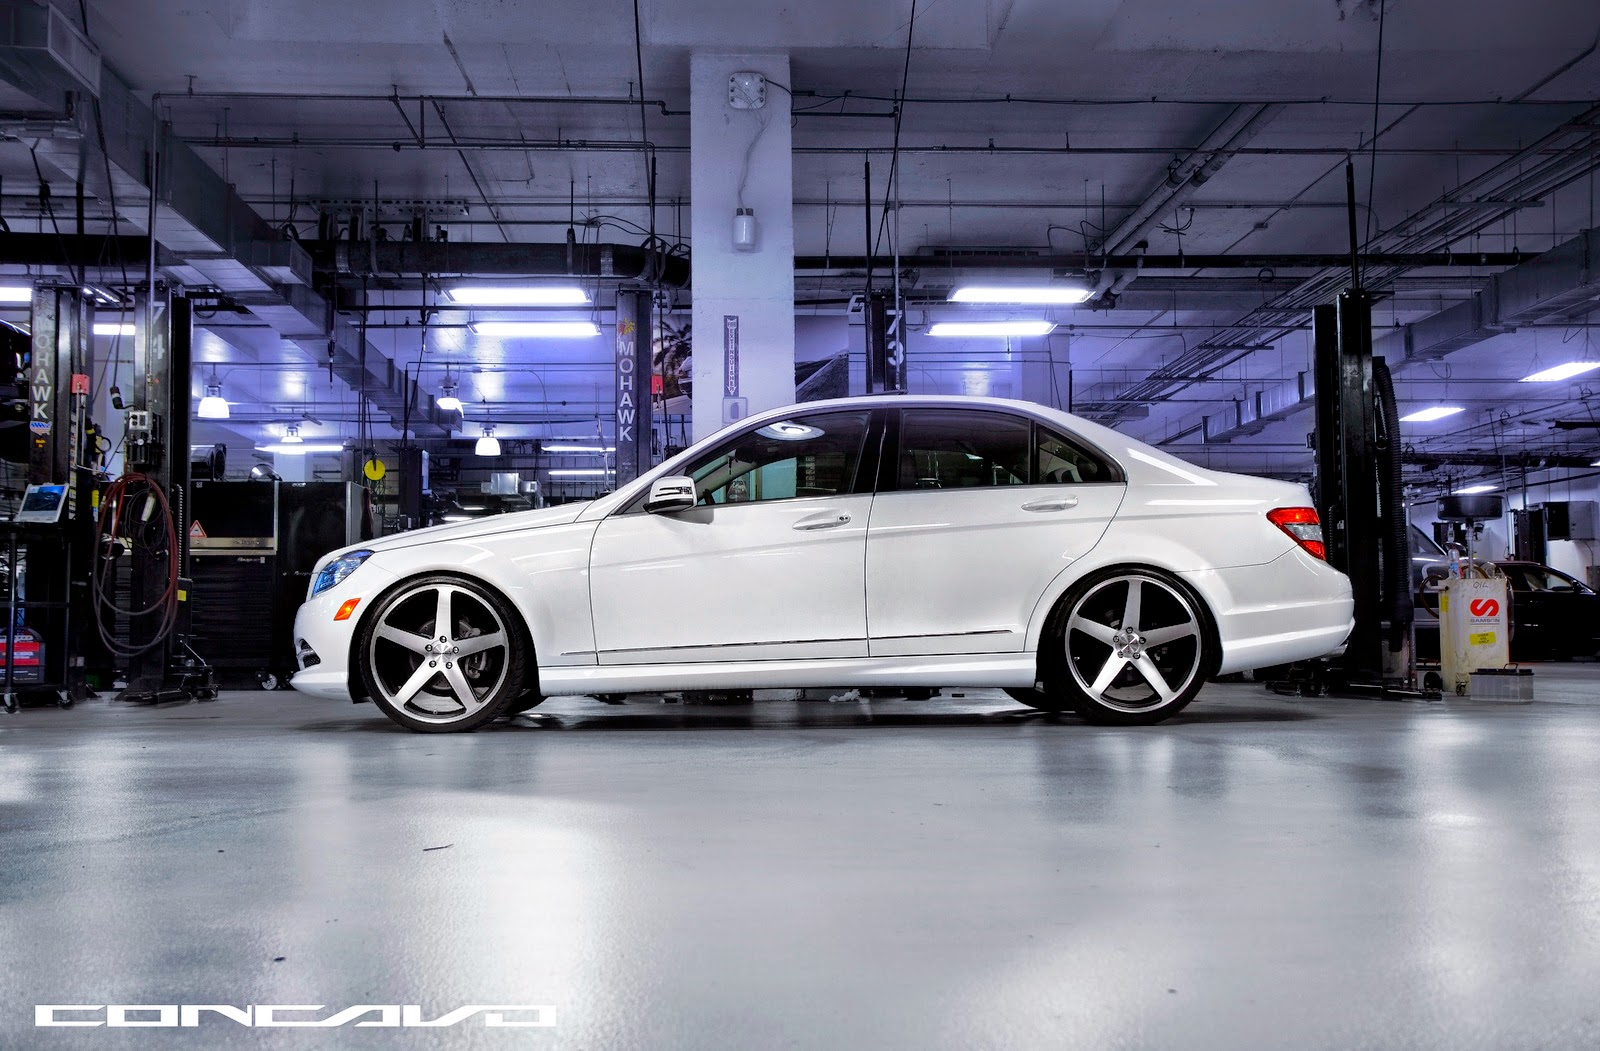 Mercedes benz w204 c300 on 20 cw 5 concavo wheels for Mercedes benz c300 rims